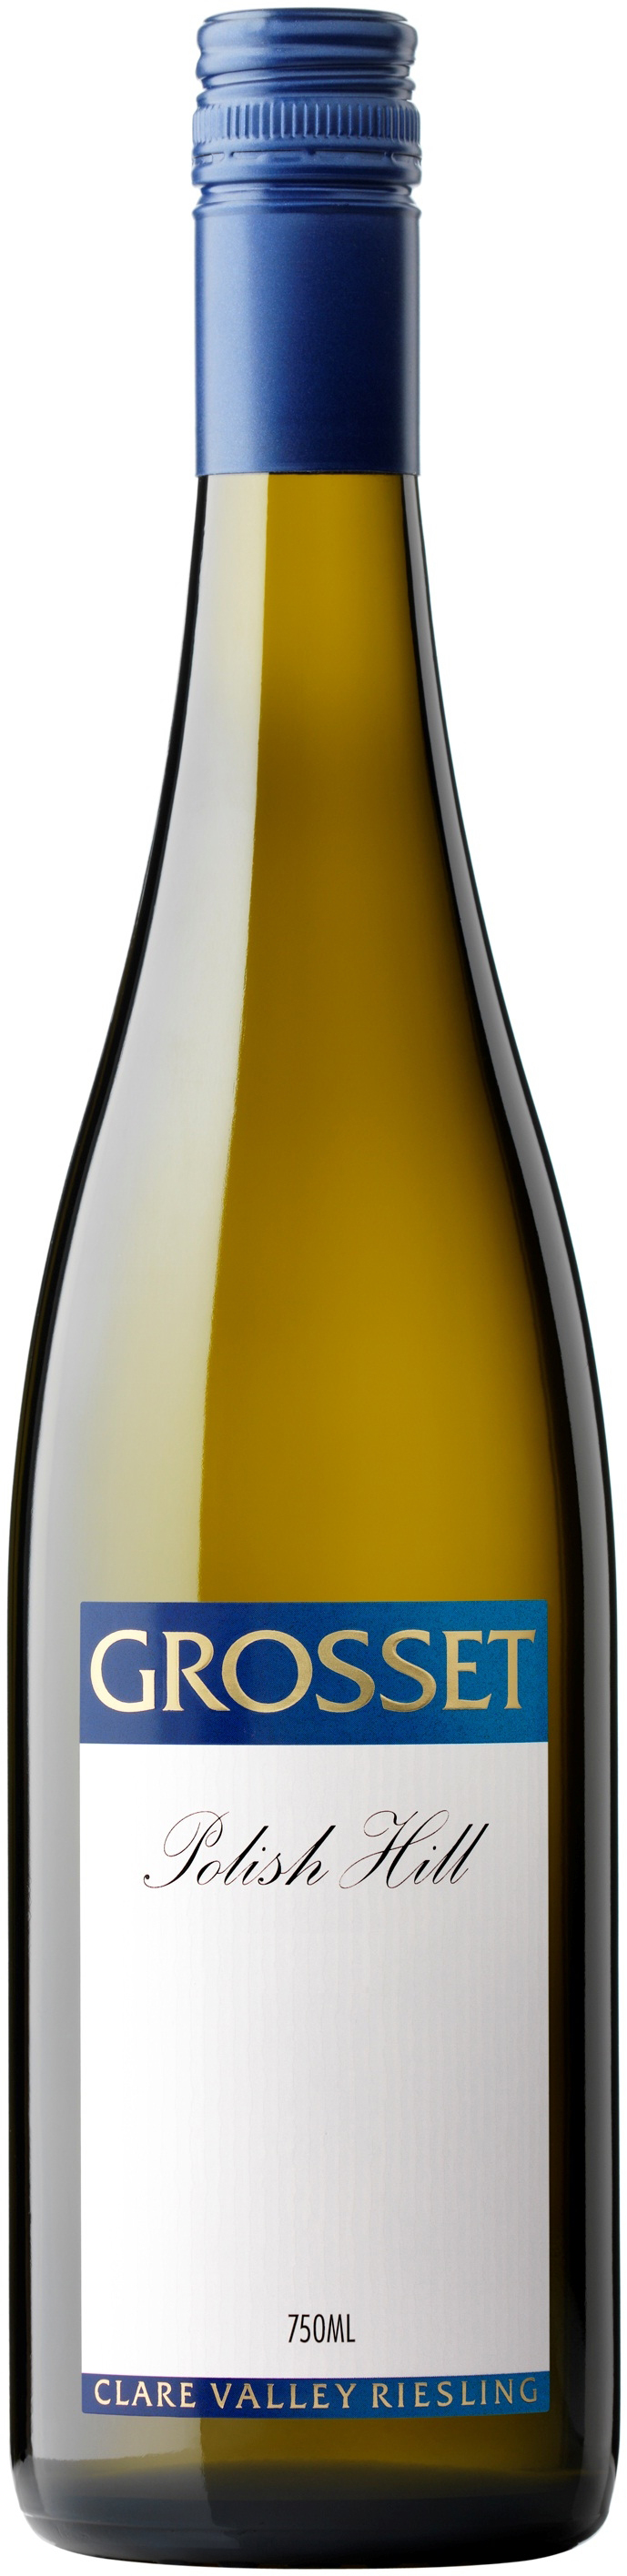 Grosset, `Polish Hill` Clare Valley Riesling 2016